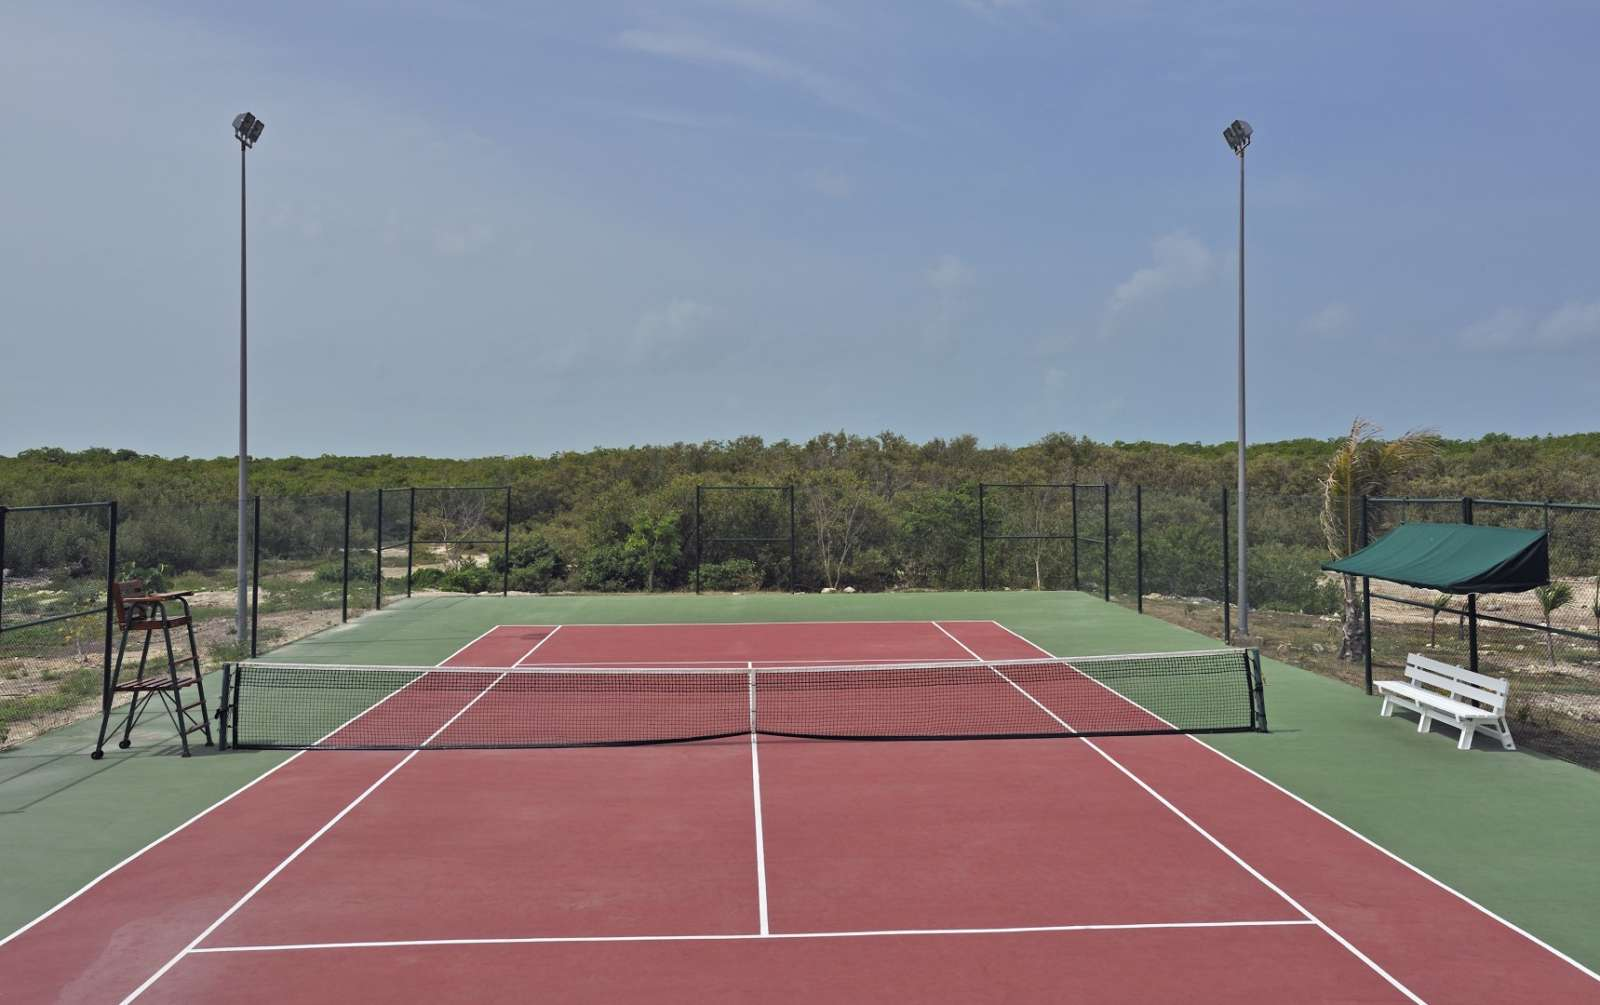 Tennis court at Melia Buenavista